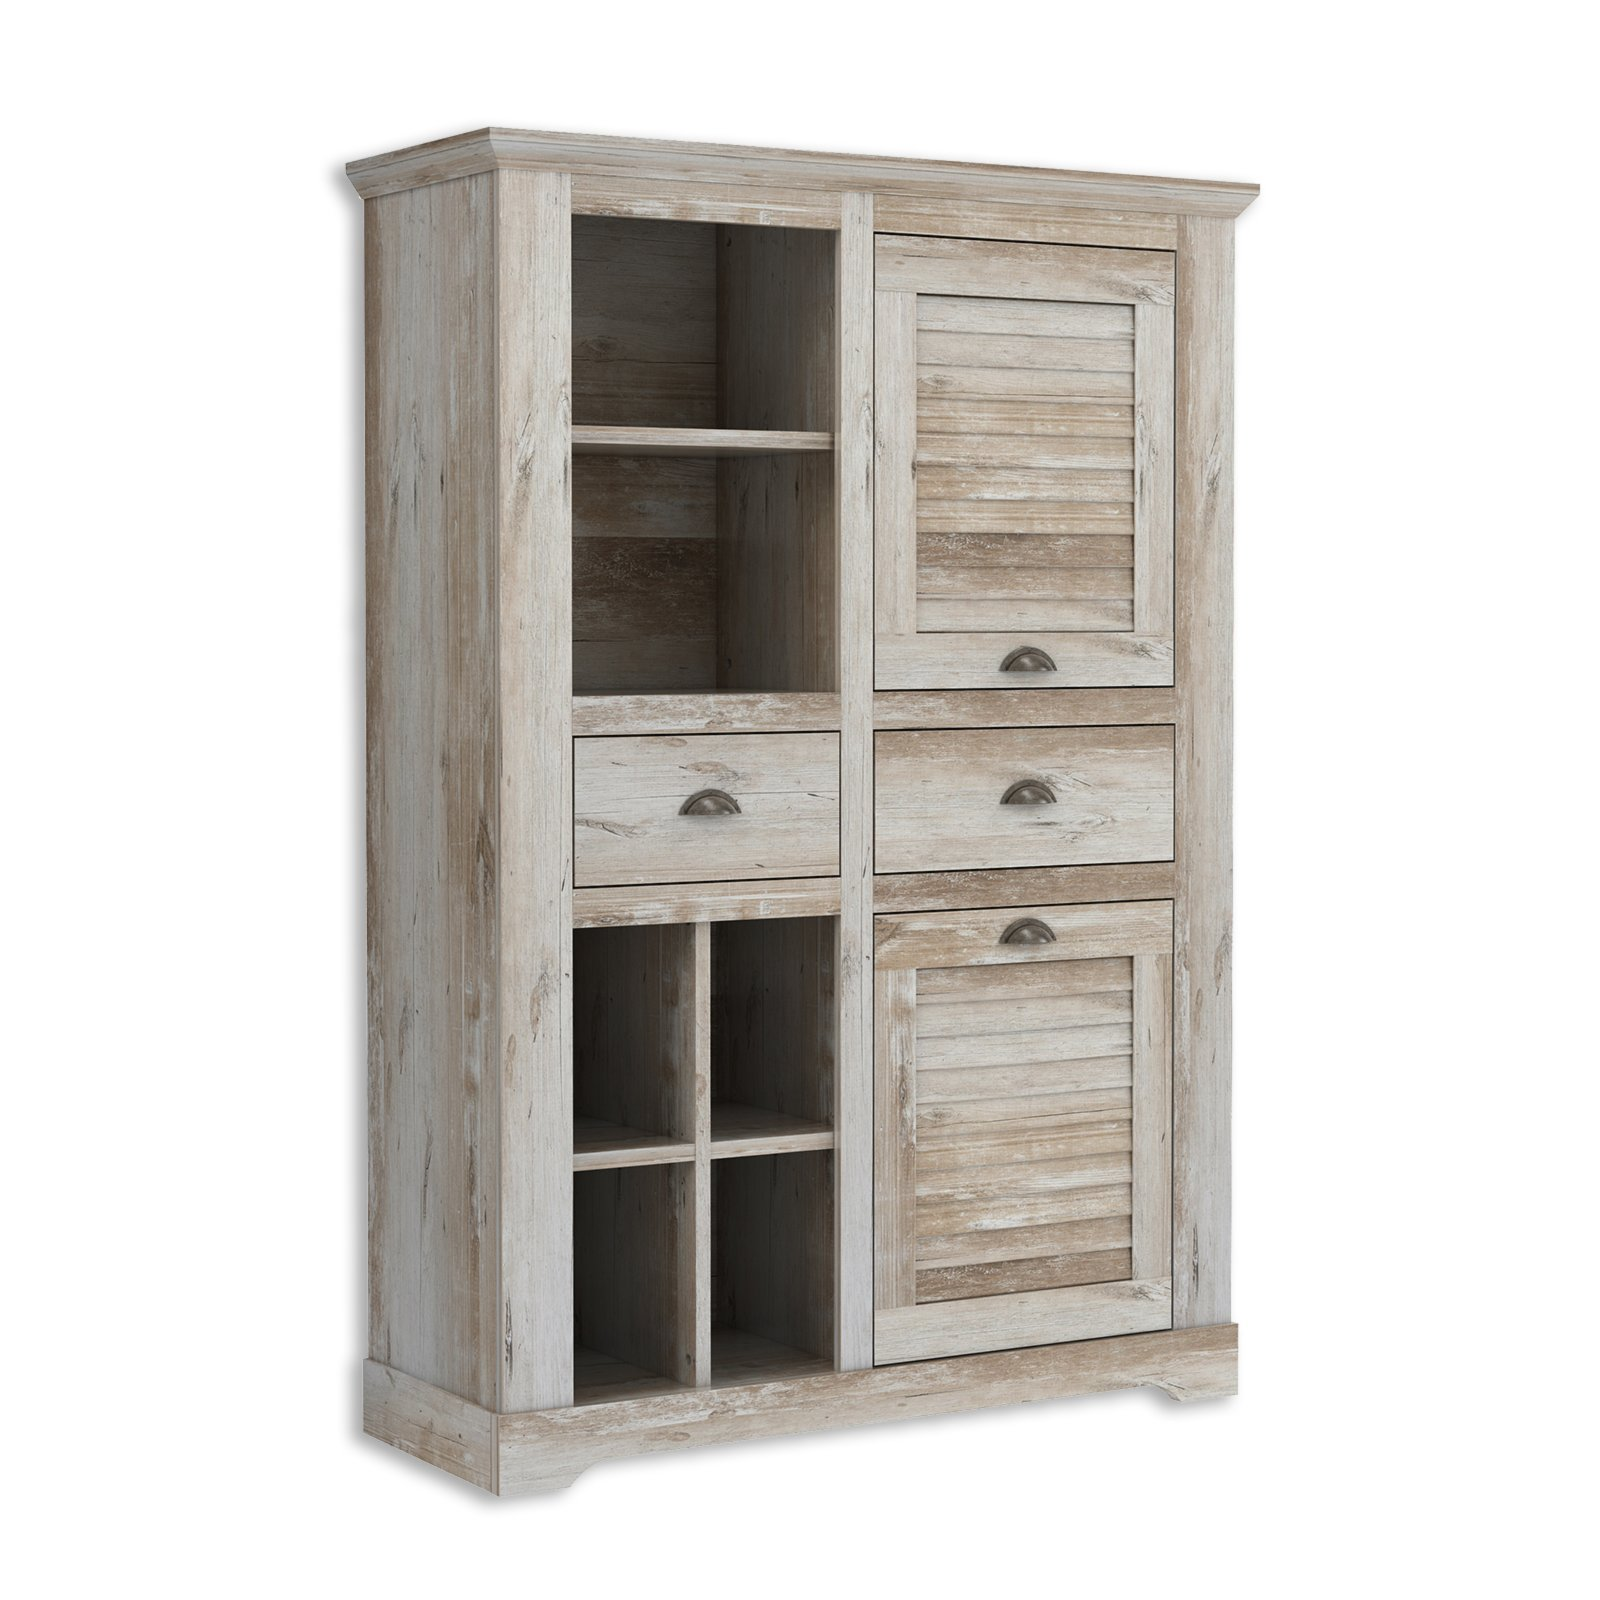 Highboard 120 Cm Breit Highboard Medina Findus Optik 120 Cm Breit